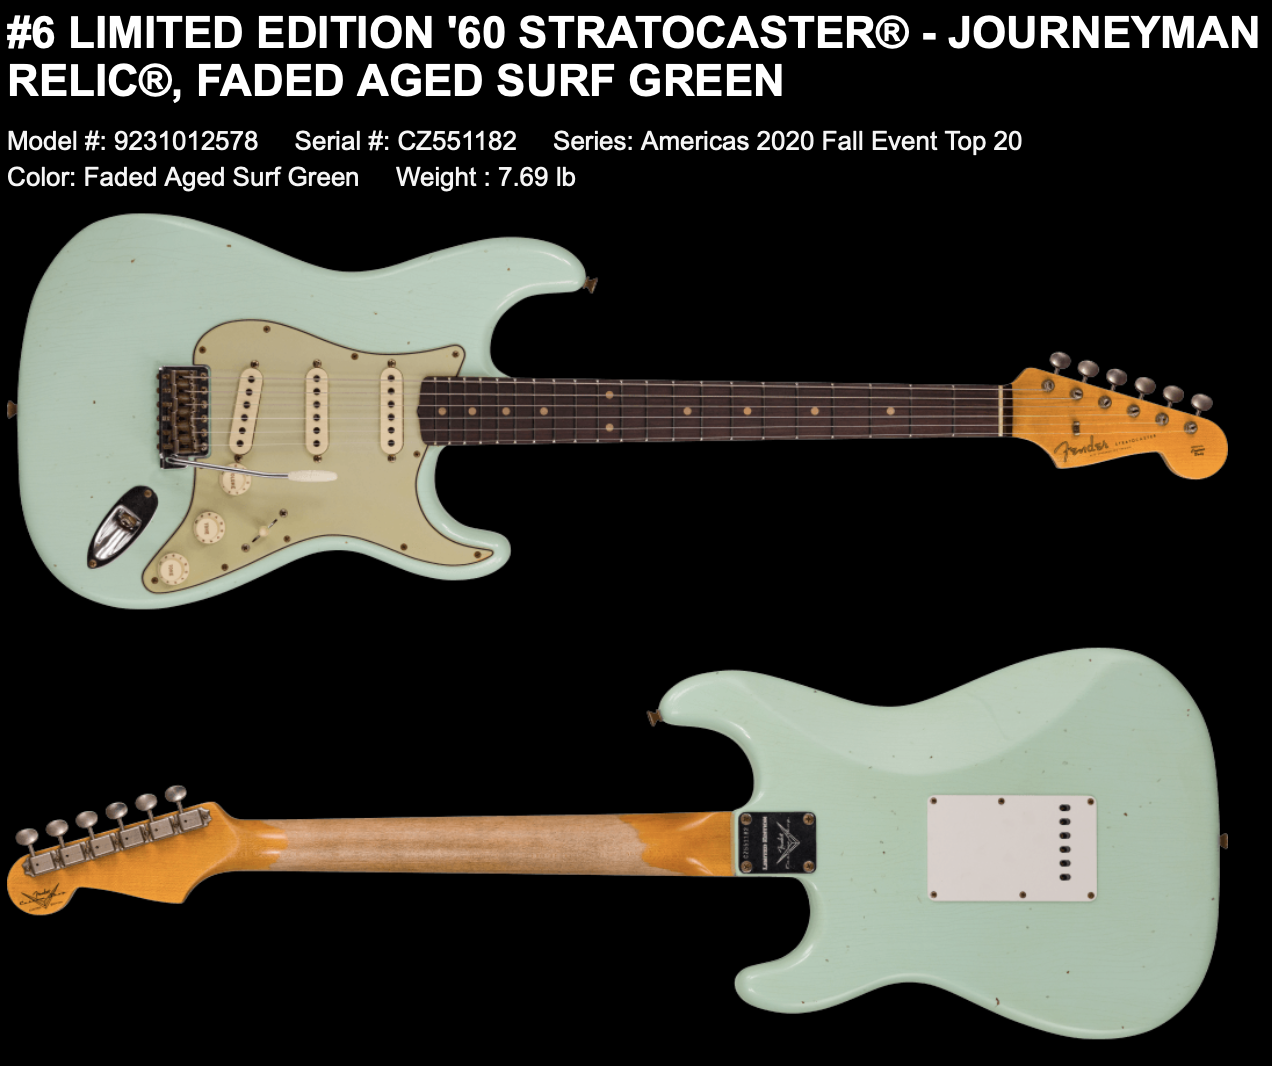 (PRE-ORDER) Fender Custom Shop Limited 1960's Journeyman Relic Stratocaster in Faded Aged Surf Green